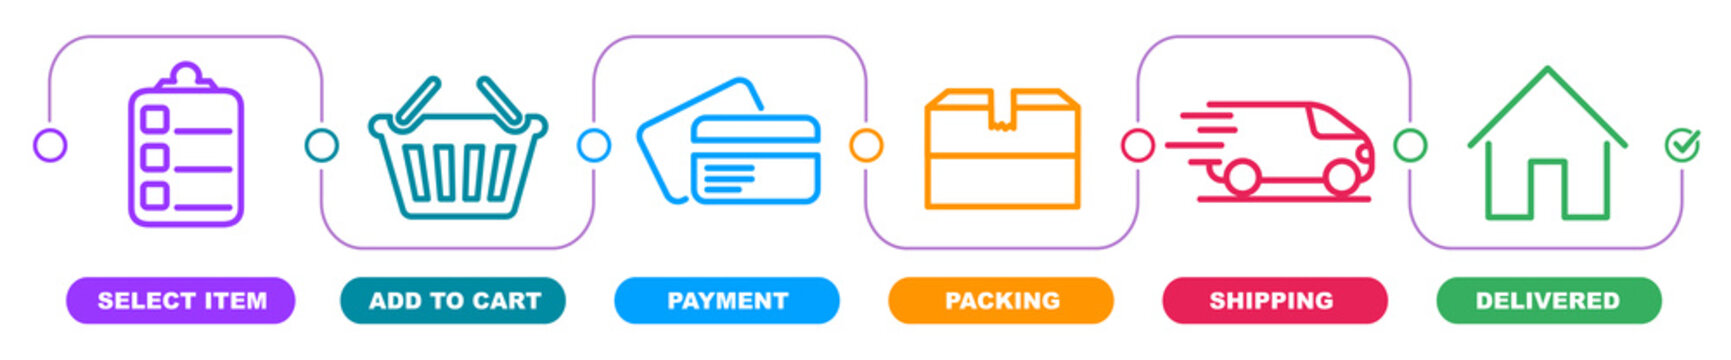 Concept of shopping process with 6 successive steps. Order parcel processing bar, ship, delivery signs for express courier delivery. Order delivery status, post parcel package tracking icons.